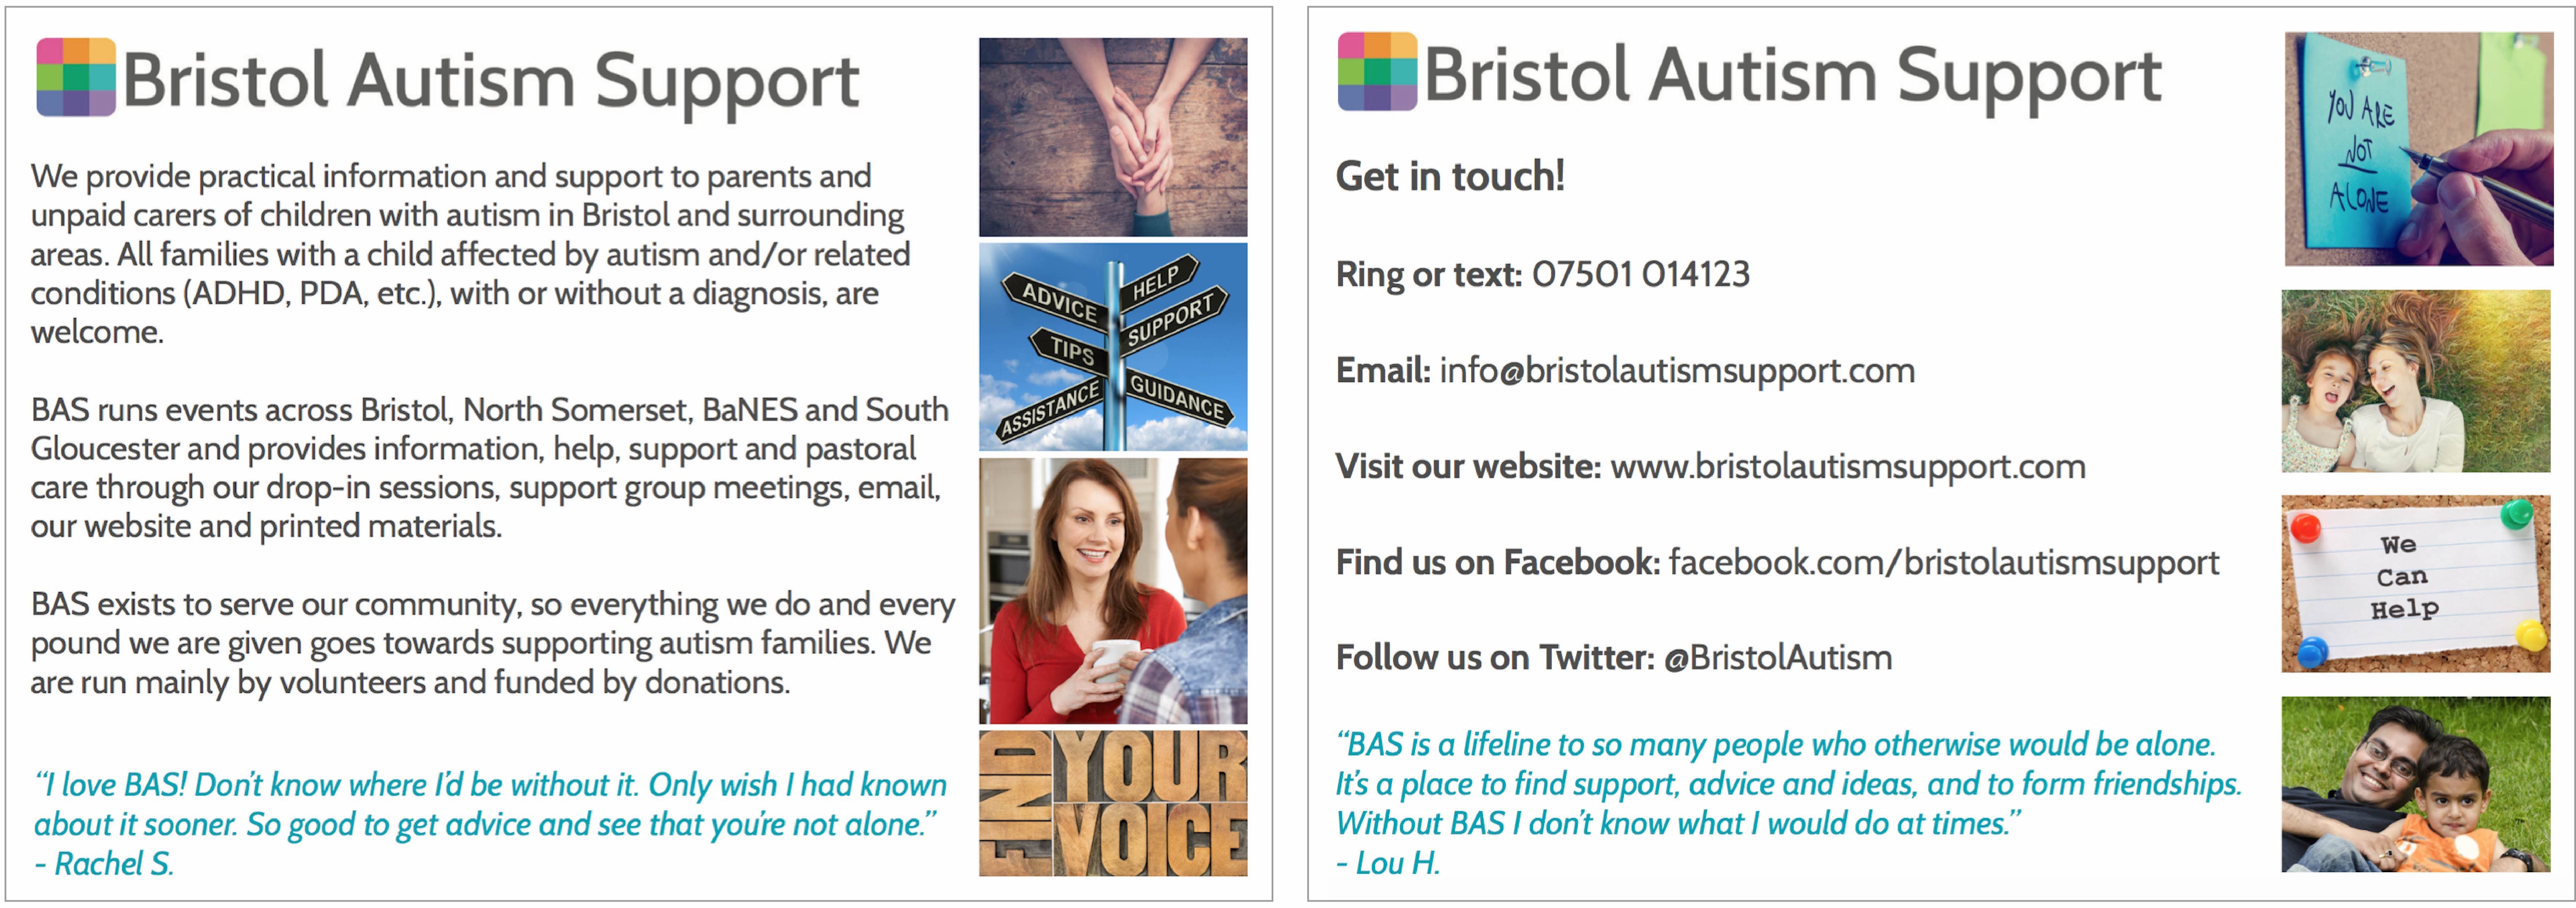 Bristol Autism Support general leaflet